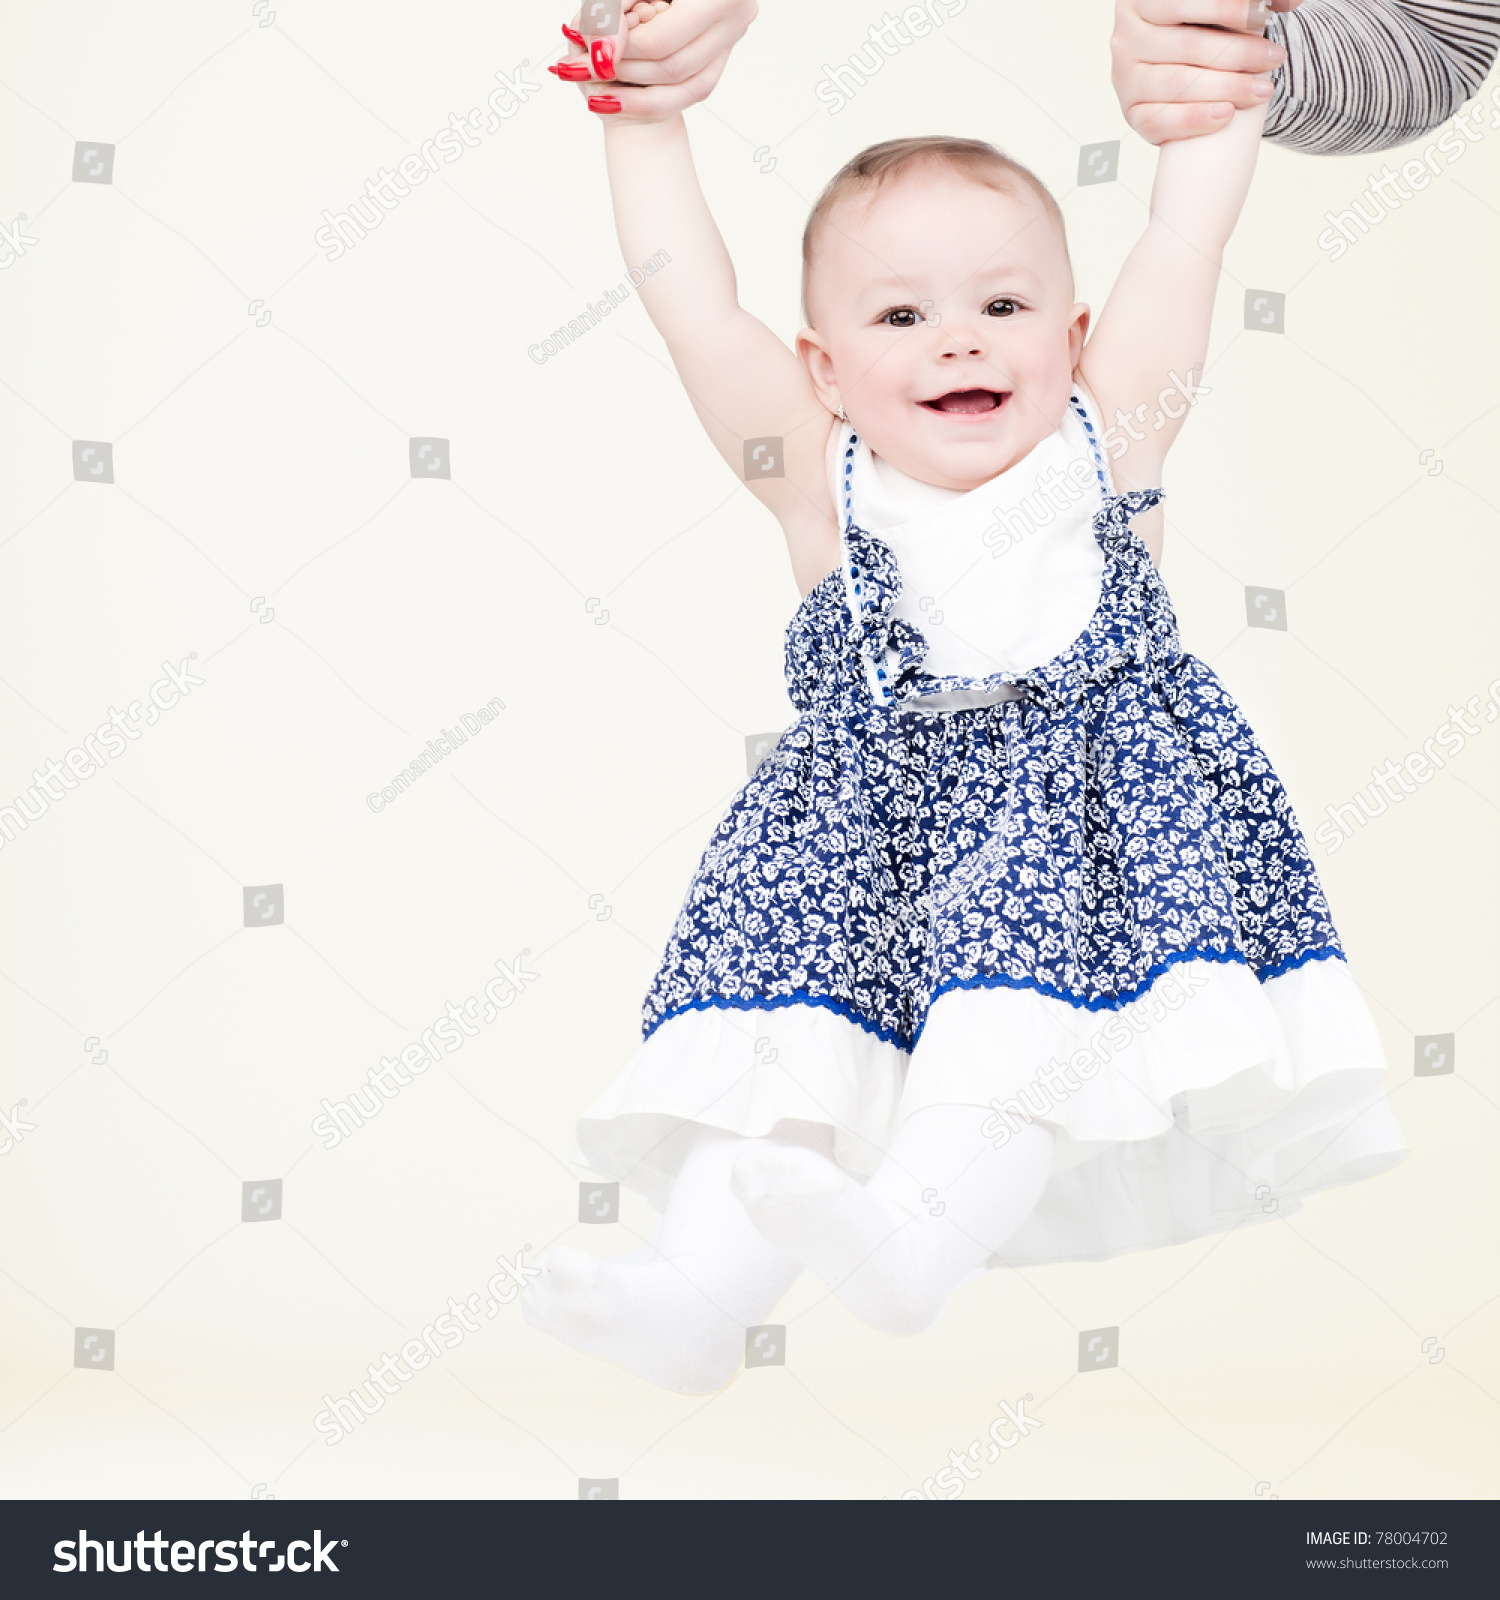 Laughing baby swinging